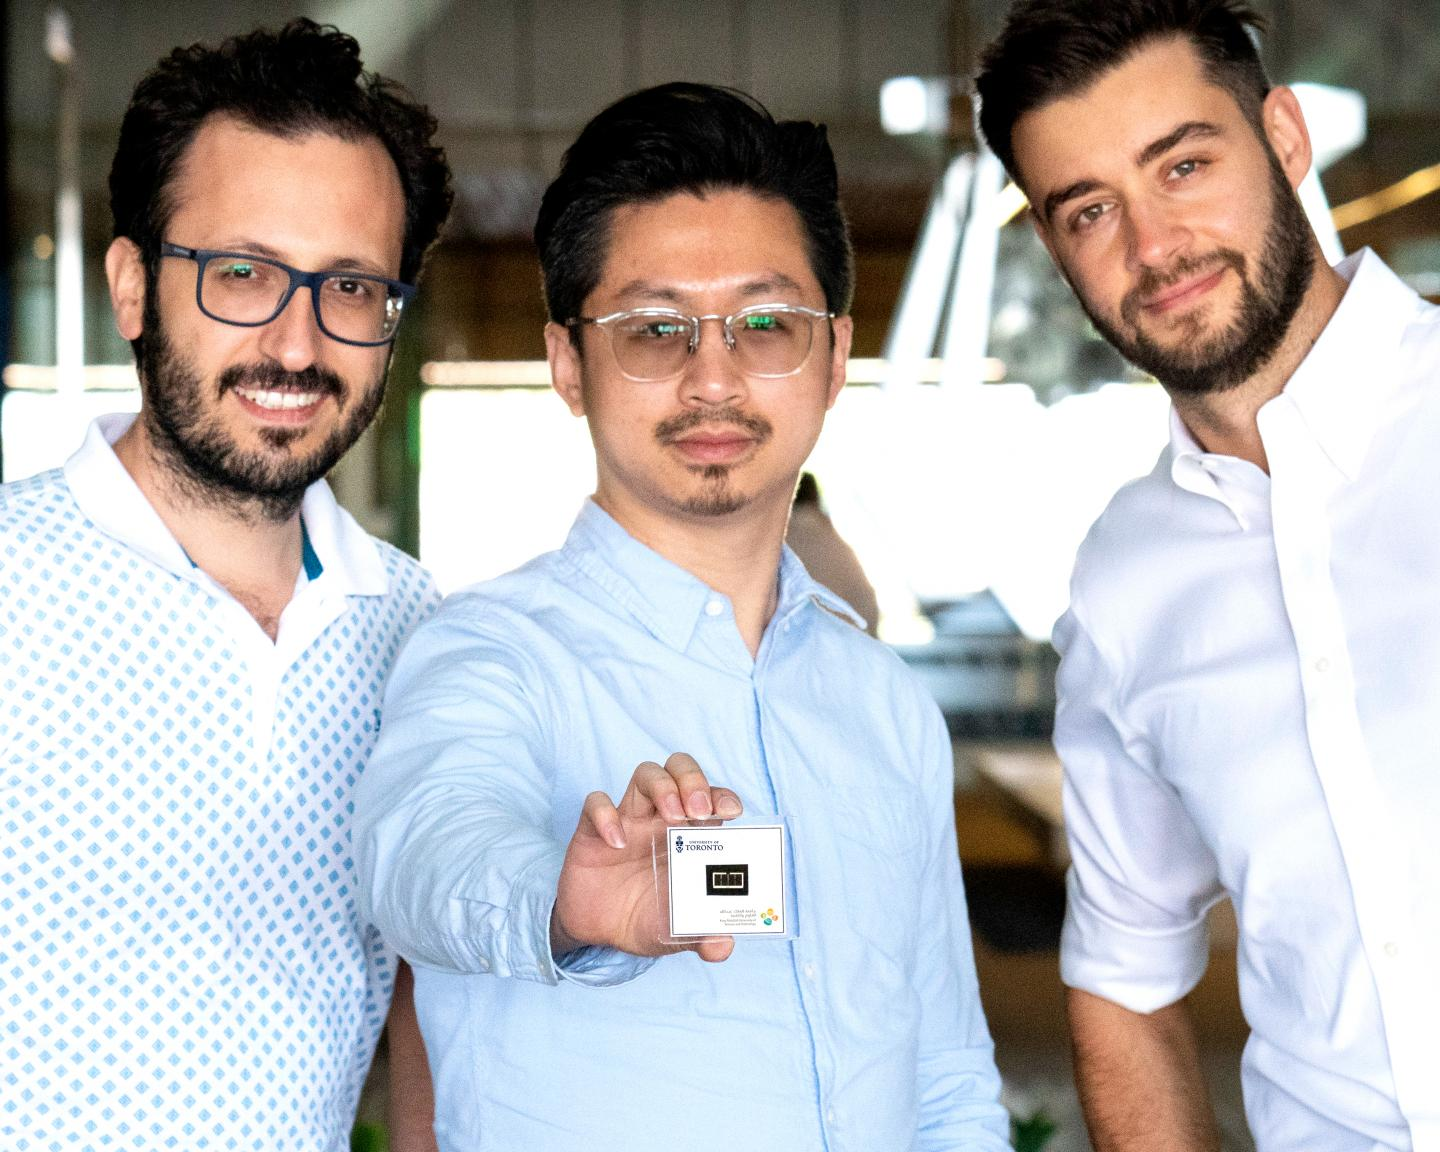 Researchers with Tandem Solar Cell